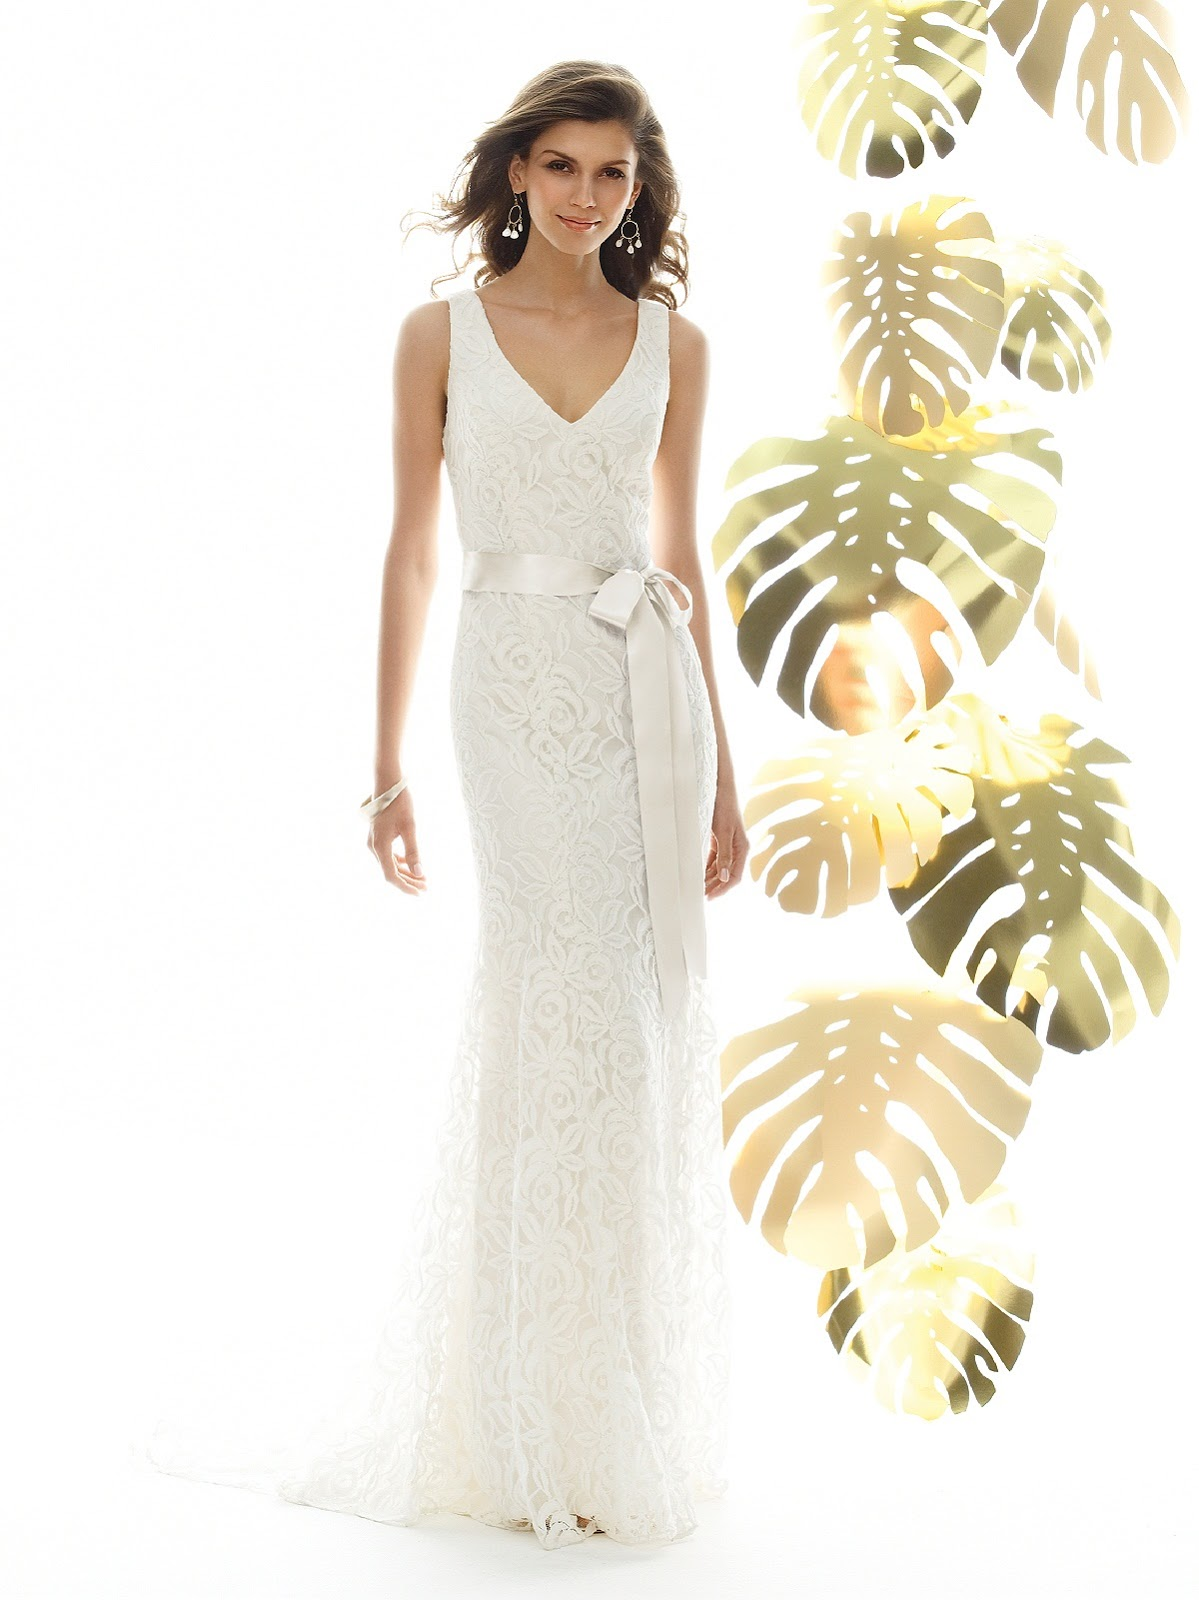 Dresses for Weddings for Mothers Over 40, Bridal Dresses for Women Over 40, Wedding Dresses for Plus Size Women, Short Wedding Dresses for Older Brides, Elegant Dresses for Women Over 40, Wedding Dresses Cheap, Simple Second Wedding Dress, Plus Size Wedding Dresses for Older Brides